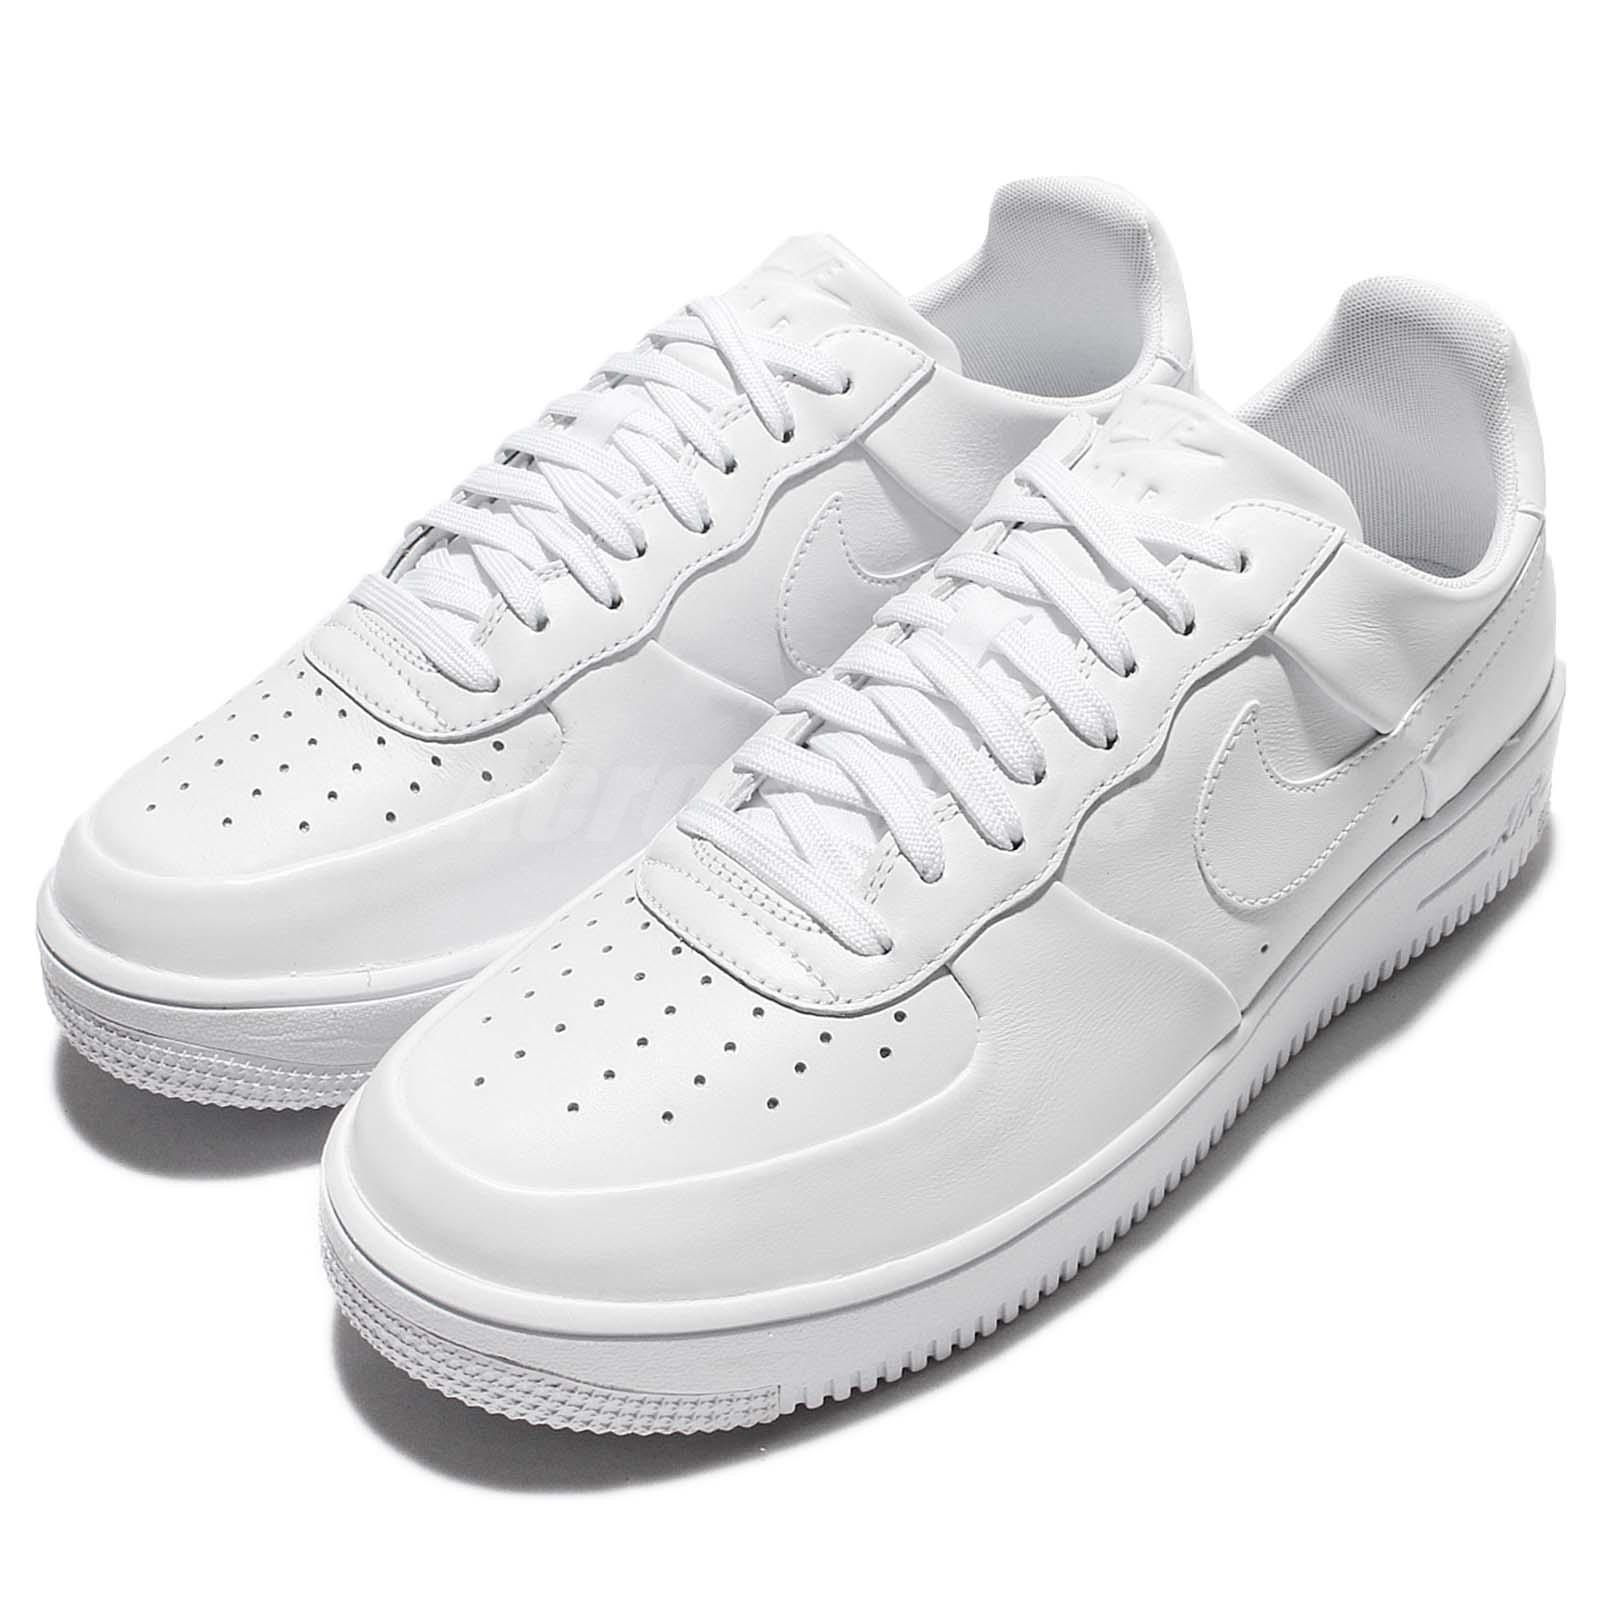 the best attitude 0362e 797fc Details about Nike Air Force 1 Ultraforce LTHR Leather Triple White Men  Sneaker AF1 845052-100